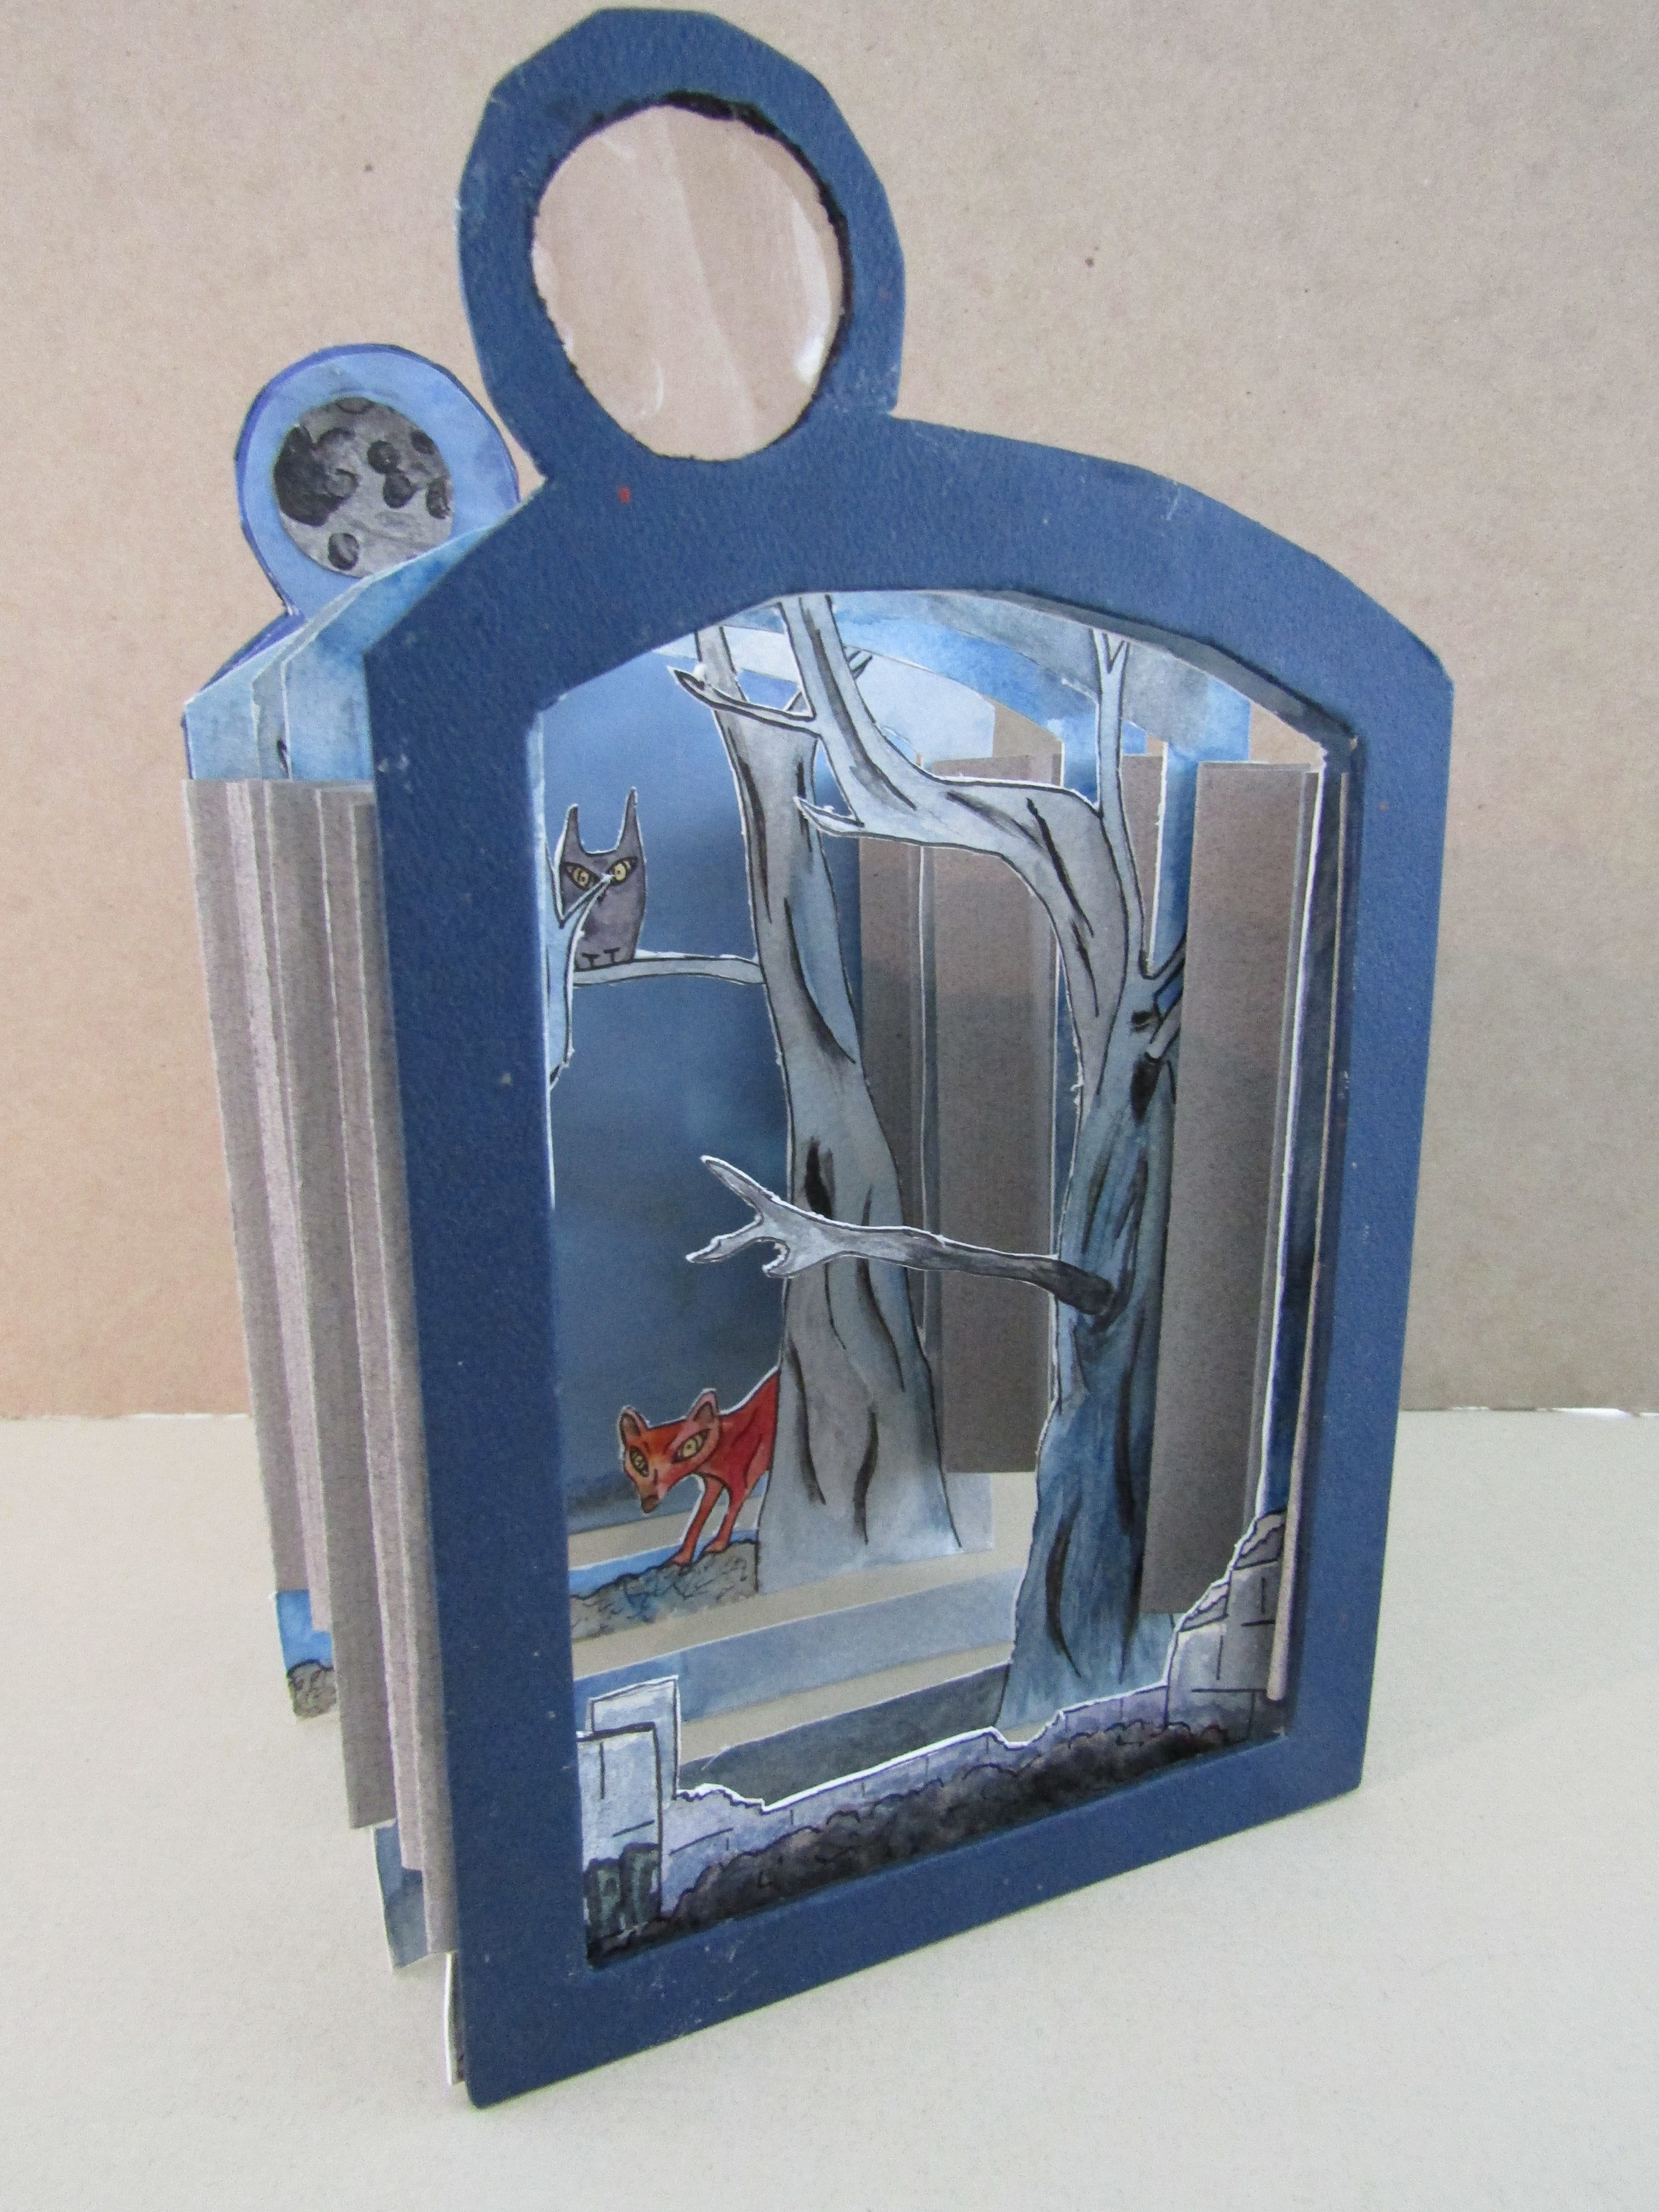 Tunnel Book Structure with Painted Images